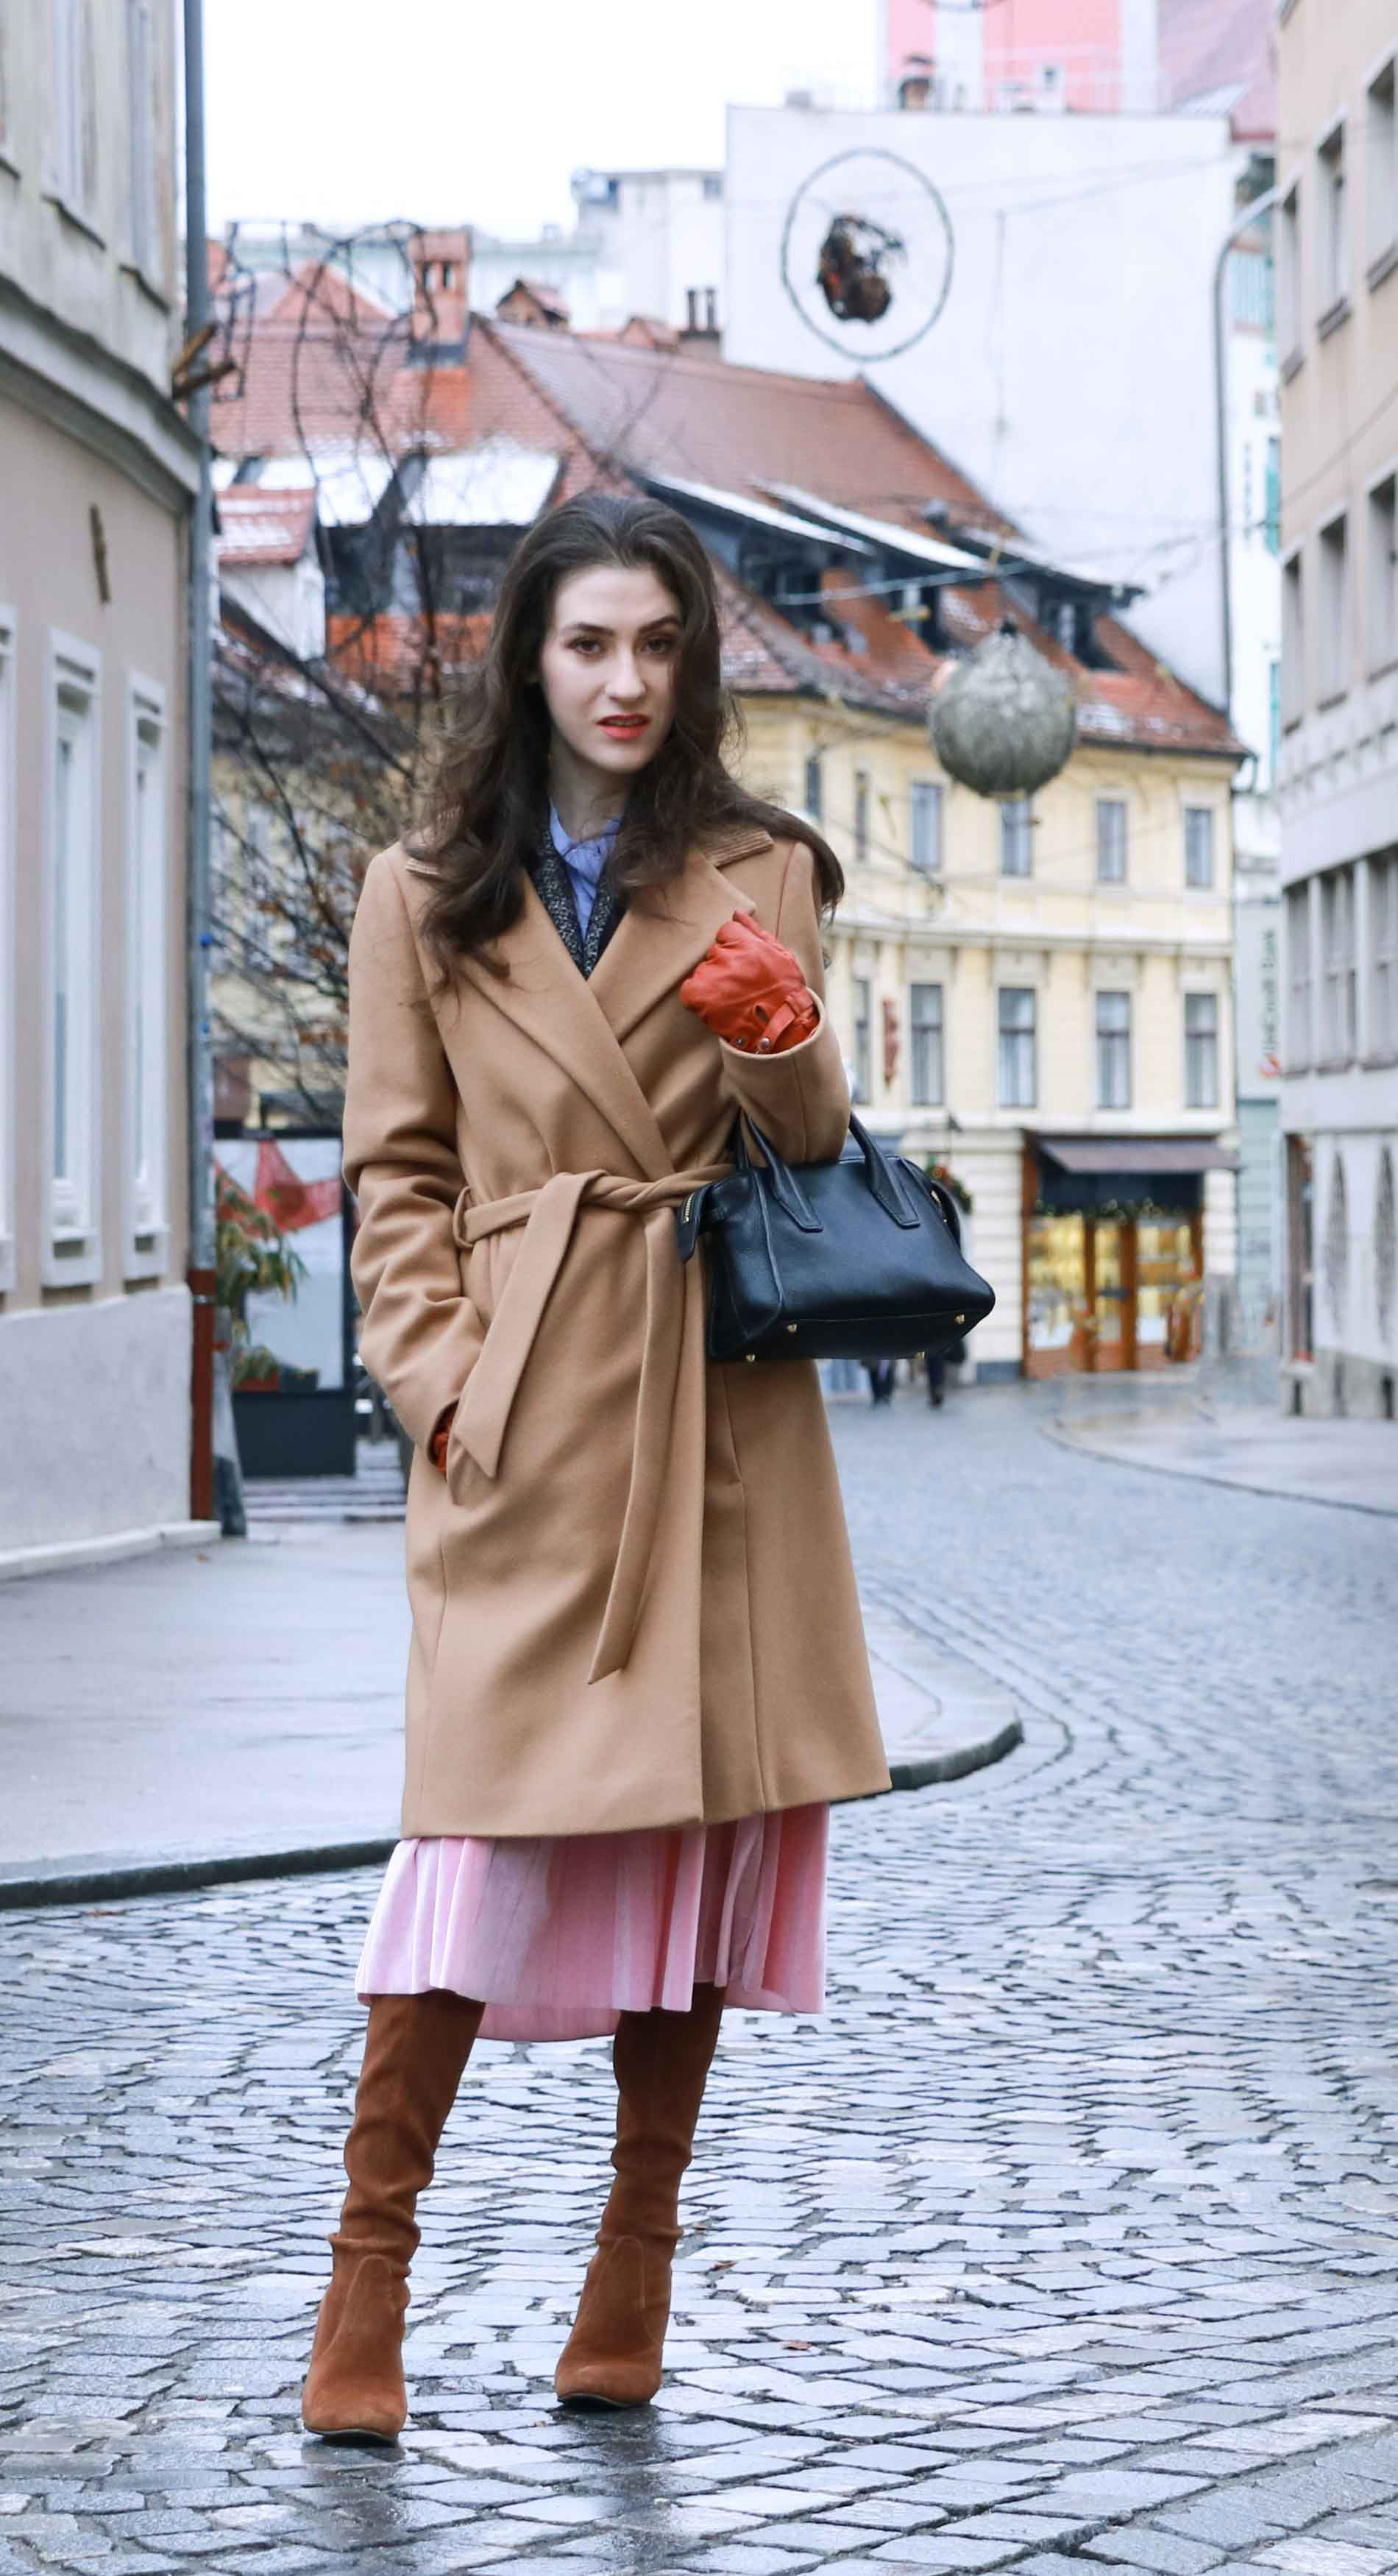 Fashion Blogger Veronika Lipar of Brunette from Wall Street wearing cozy outfit for Christmas brunch